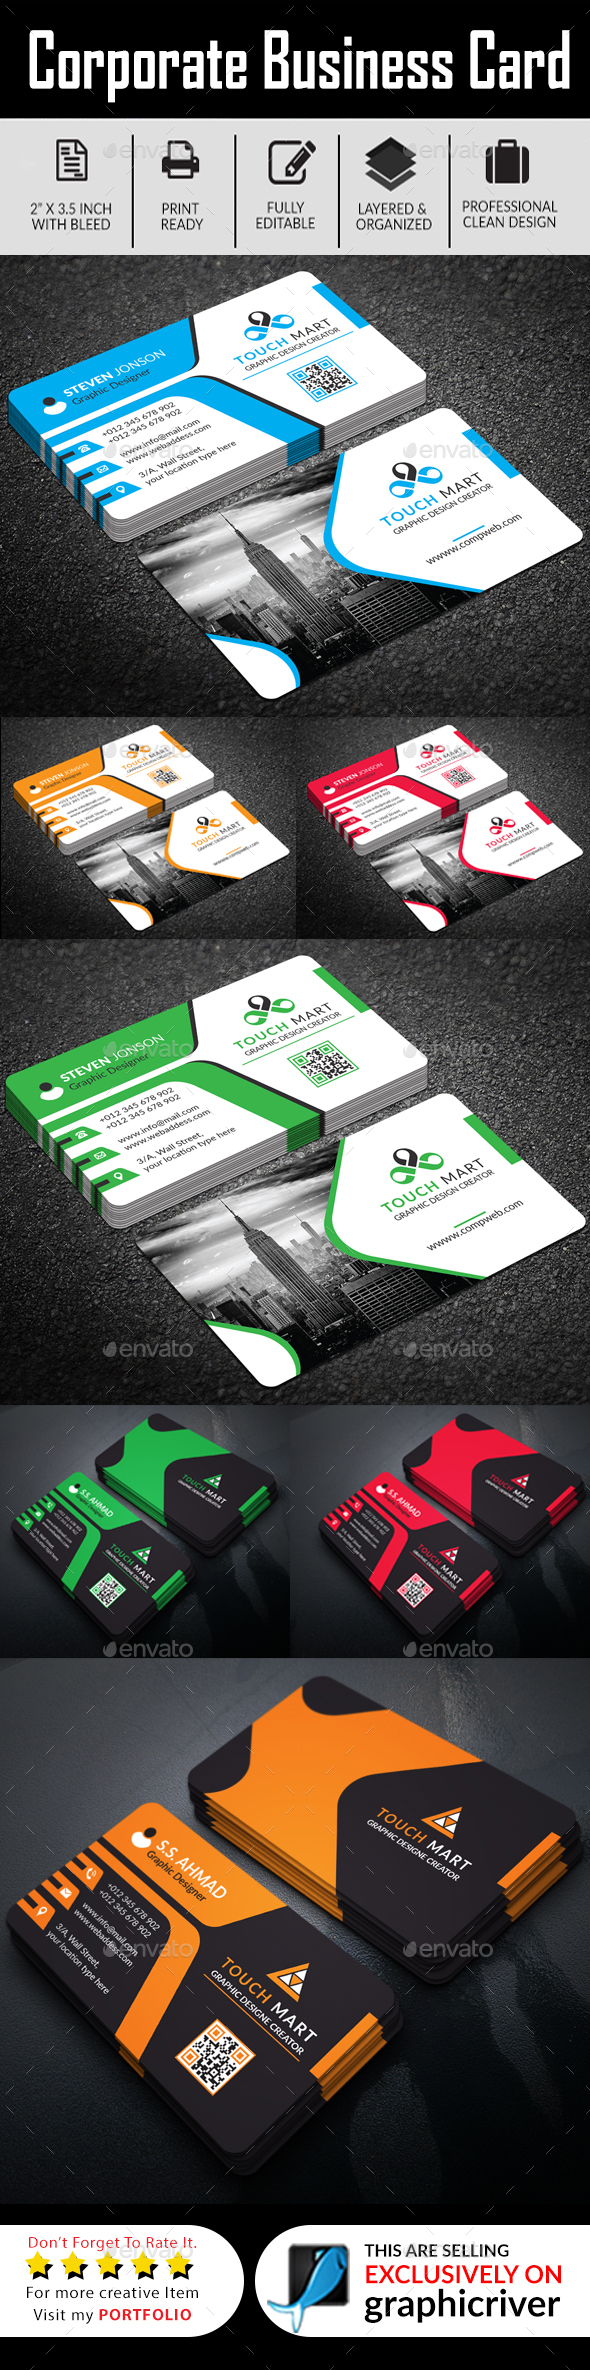 Business Card Bundle (Ai & Eps) by Graphic-Forest | GraphicRiver